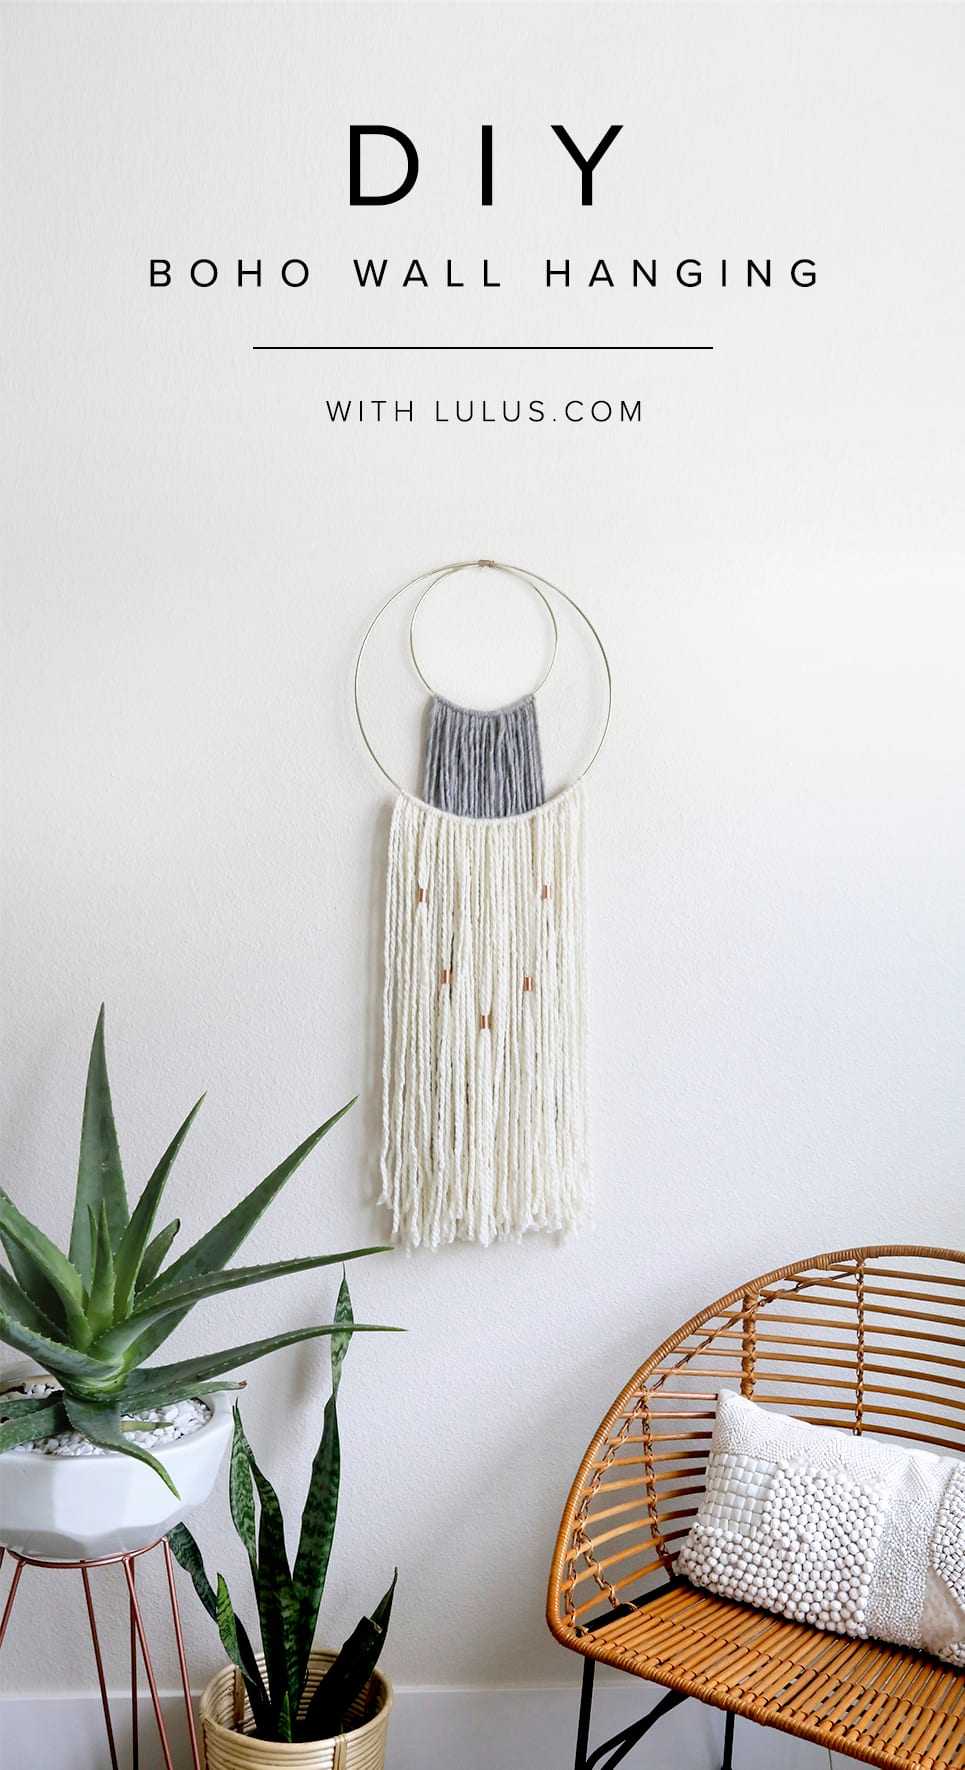 Boho Wall Hanging diy boho wall hanging - lulus fashion blog